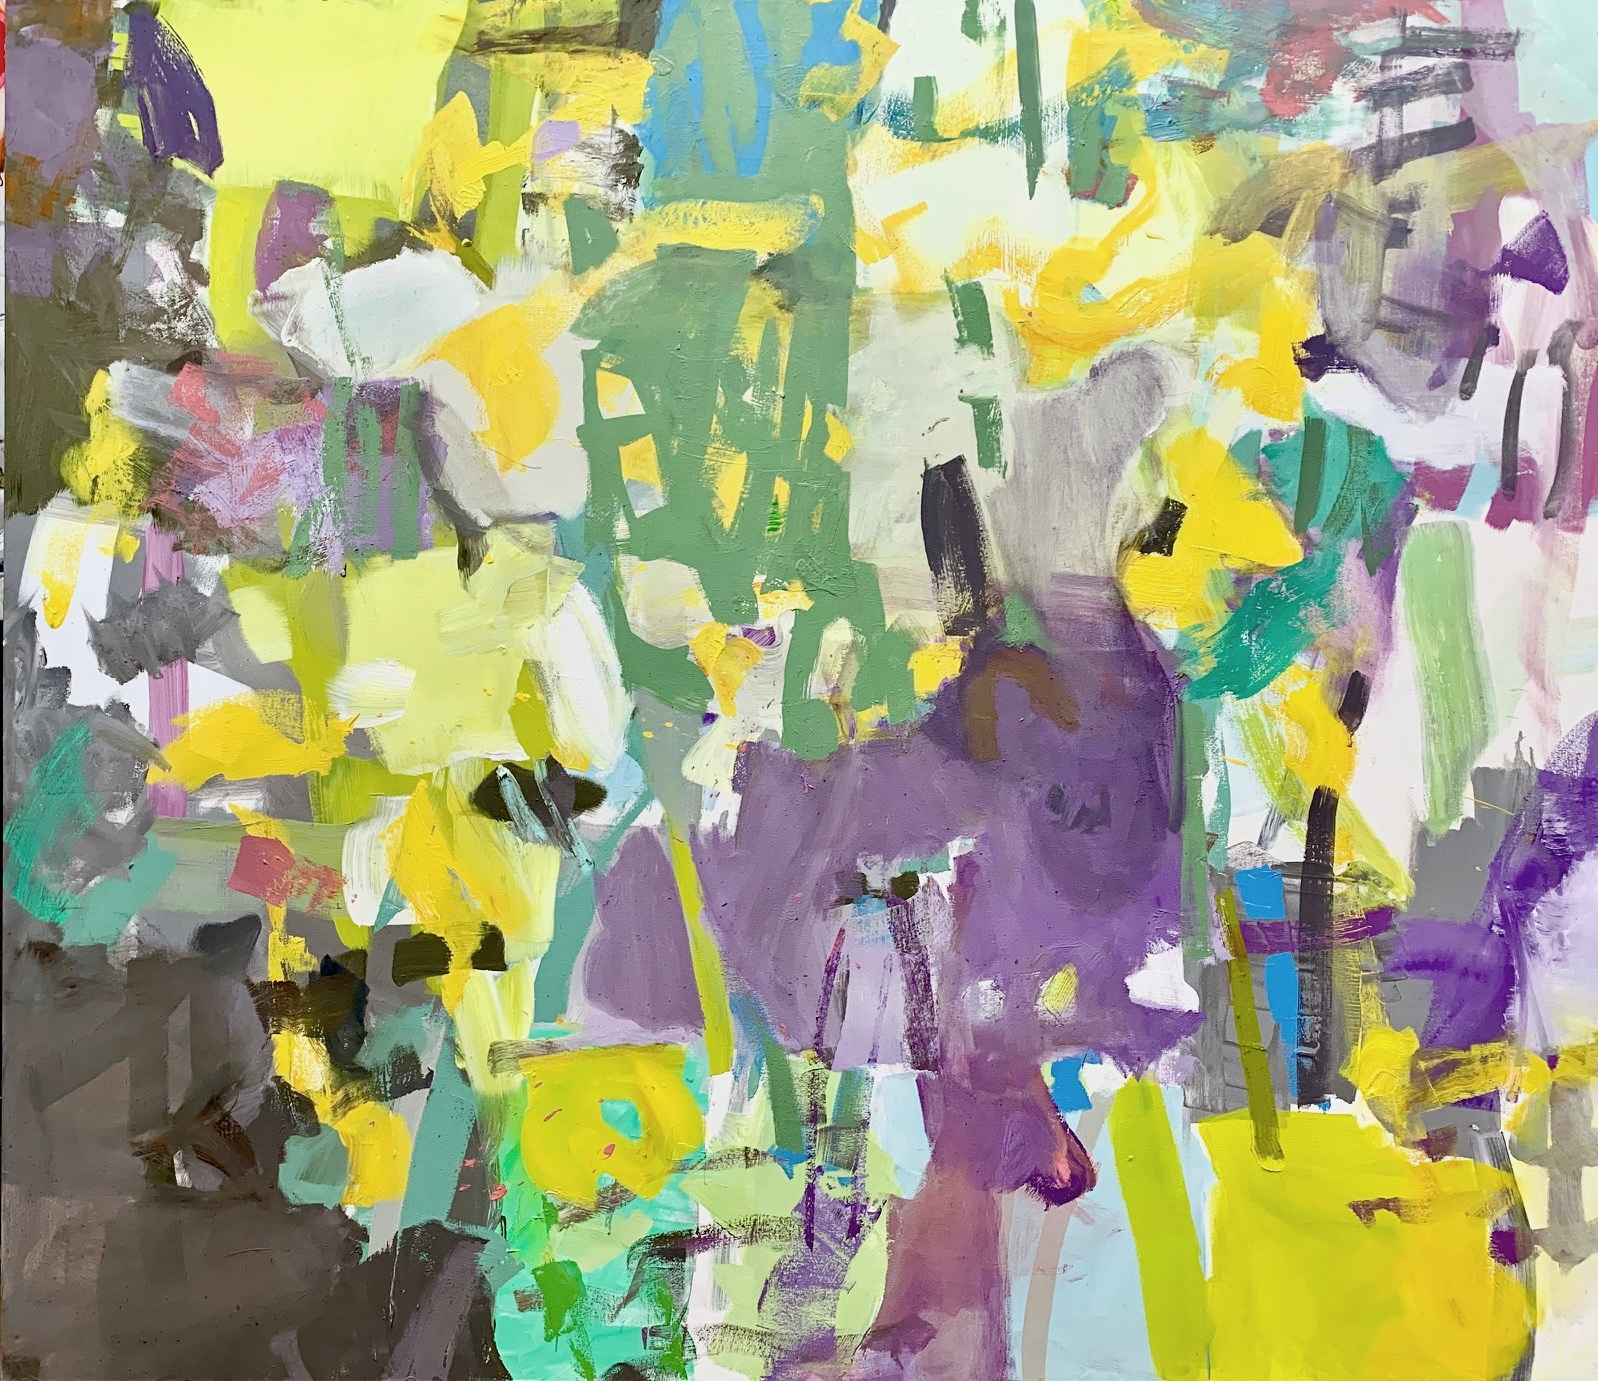 Perennial  2019 52 x 60 inches Oil on Canvas